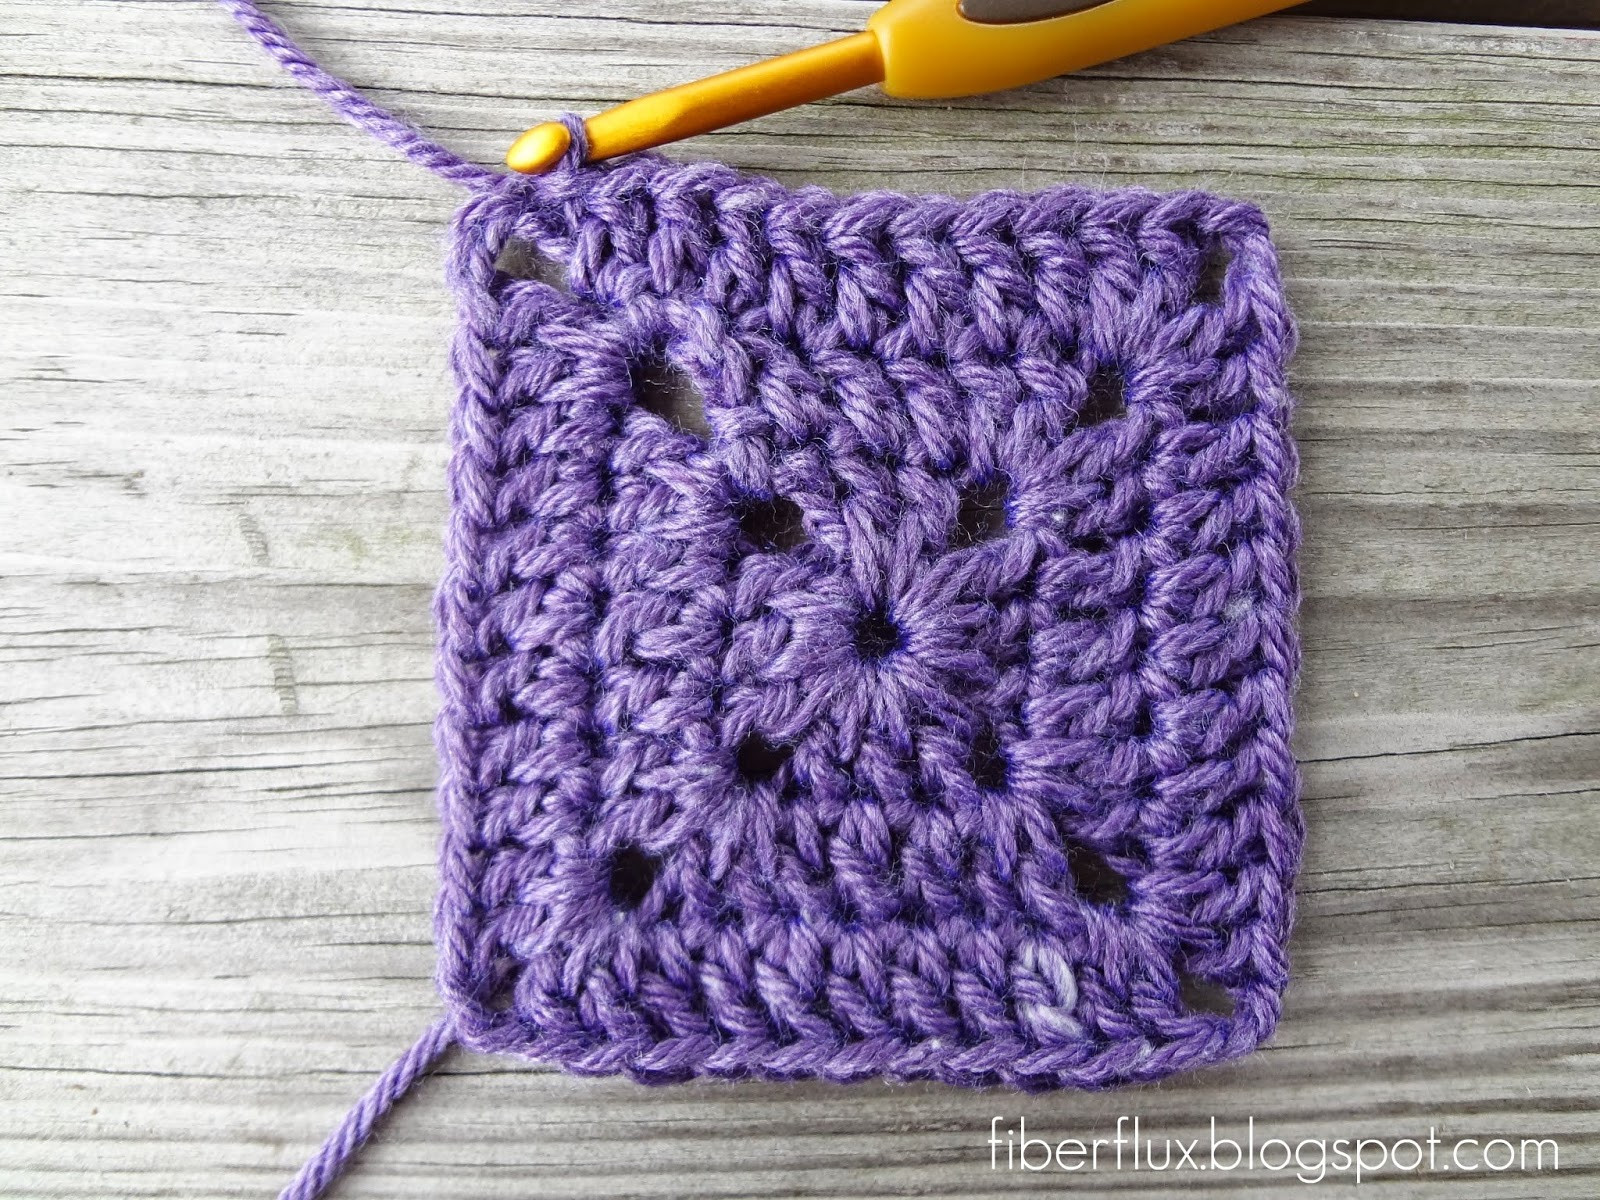 Awesome Fiber Flux How to Crochet A solid Granny Square Crochet for Beginners Granny Square Of Unique 49 Ideas Crochet for Beginners Granny Square